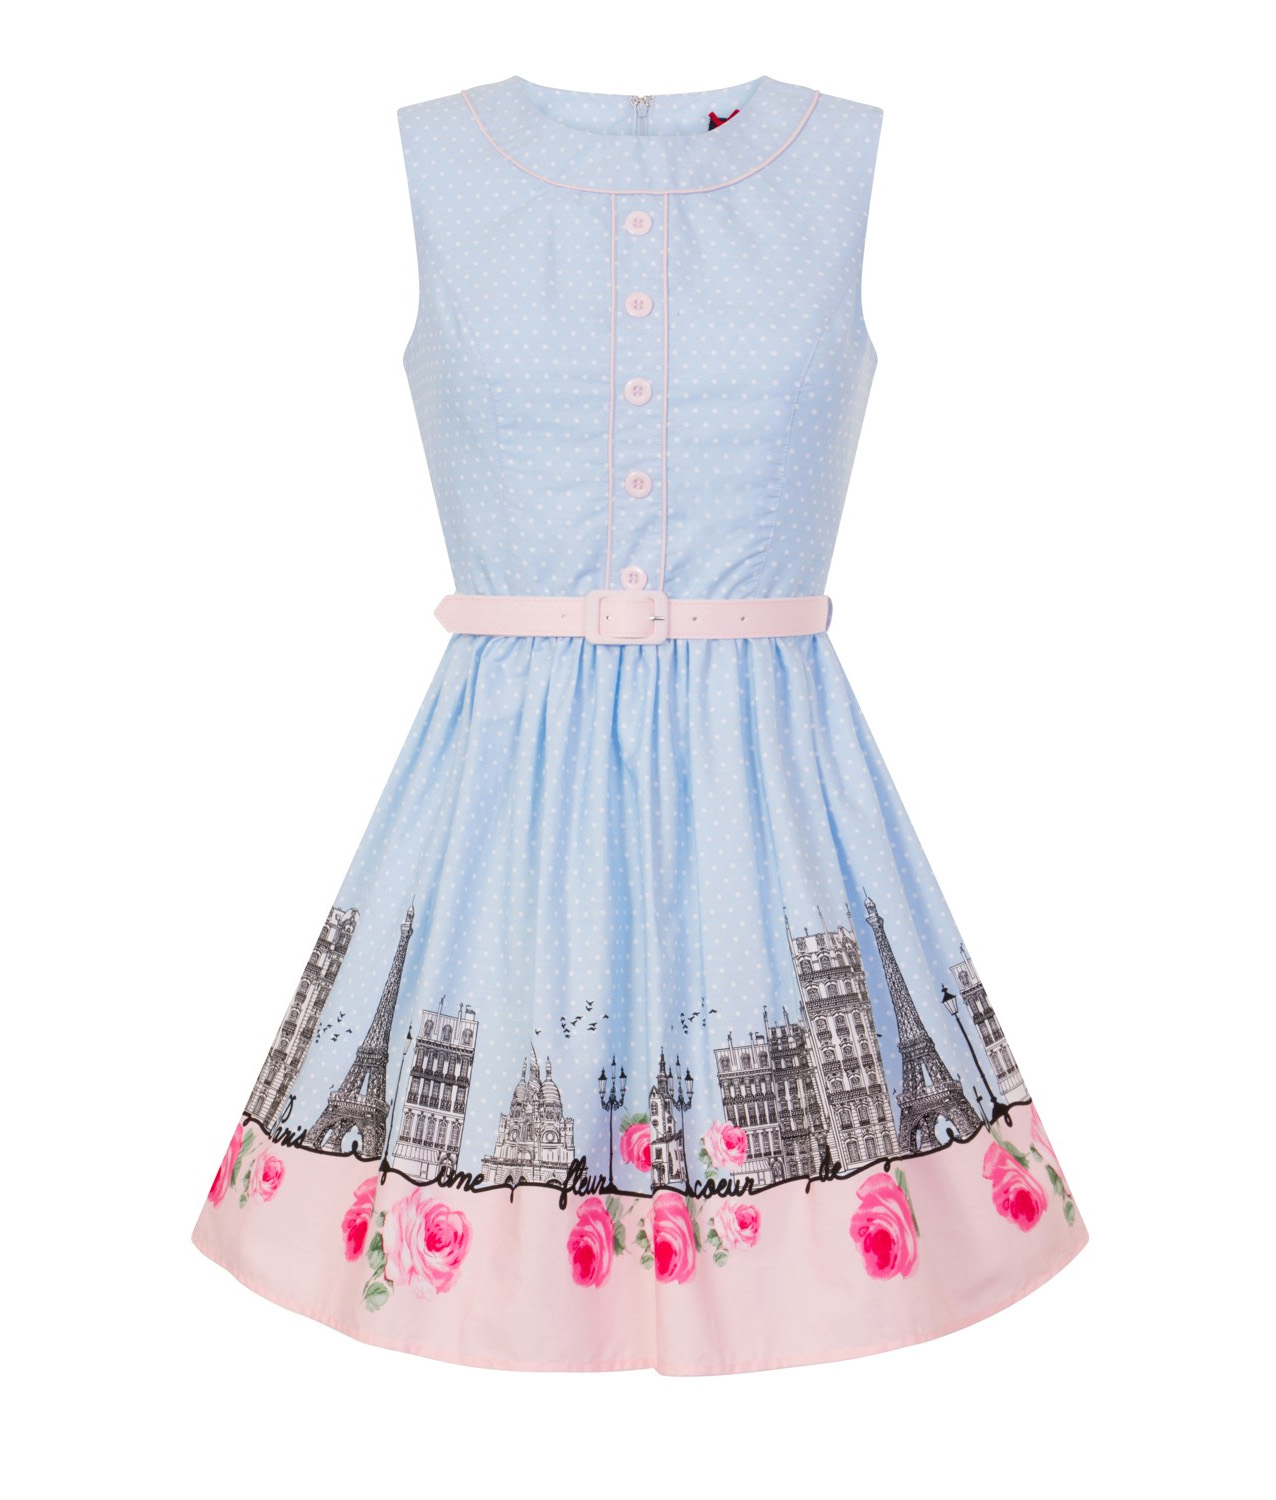 Hell-Bunny-50s-Vintage-Blue-Polka-Dot-PANAME-Mini-Dress-Paris-All-Sizes thumbnail 41